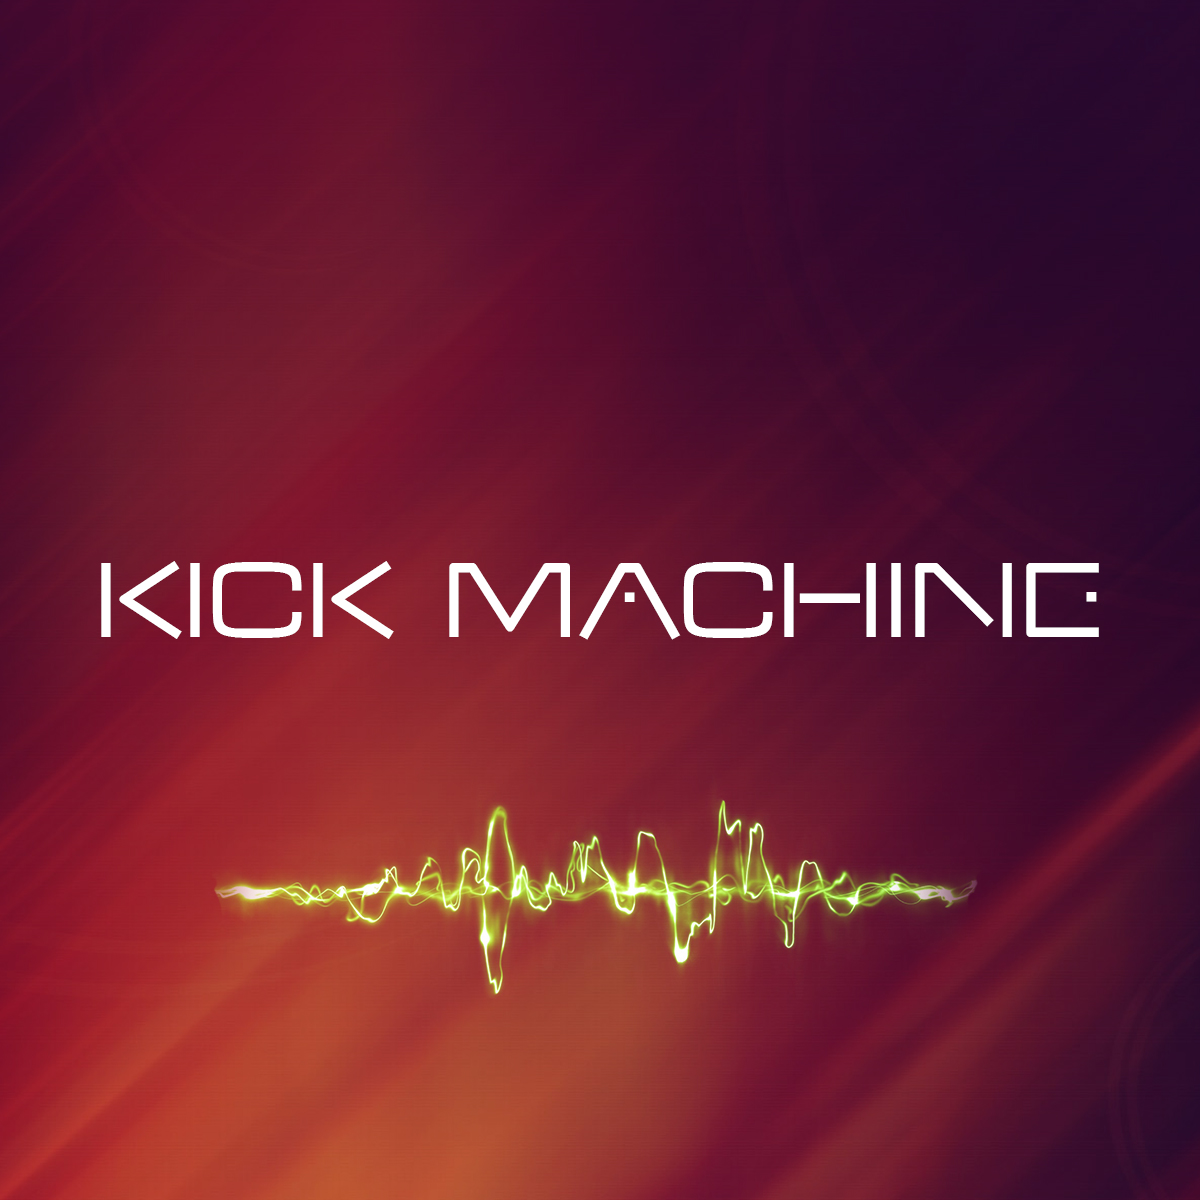 Kick Machine